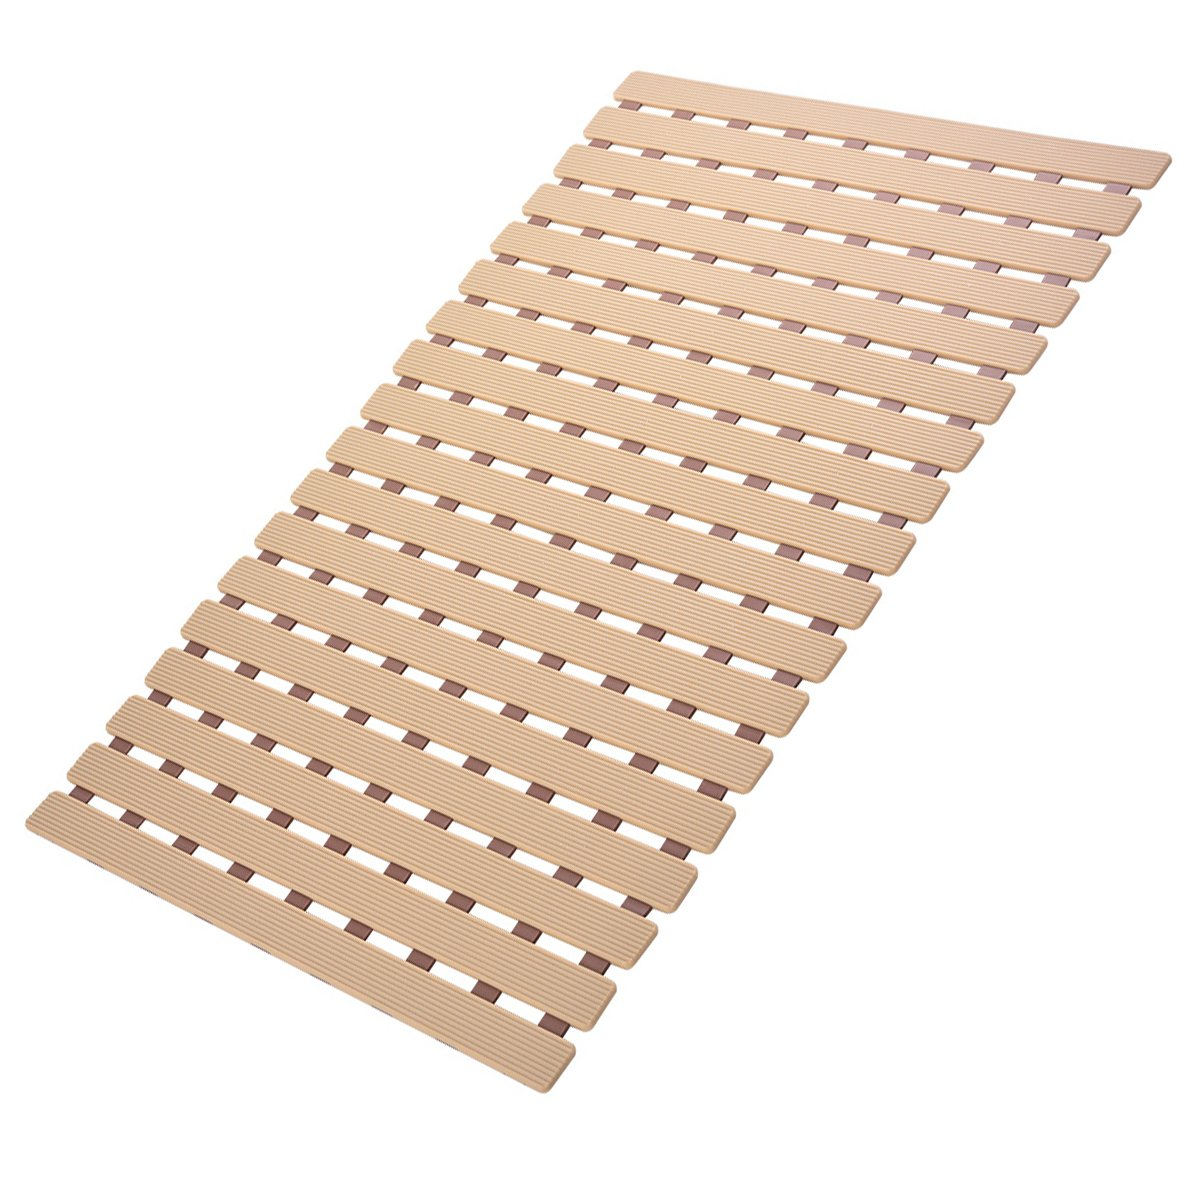 ifrmmy Newest Non Slip Shower Floor Mat with Drain Hole Anti-Slip and Mold Resistant, 24.8'' x 15.7'' (Light Brown)